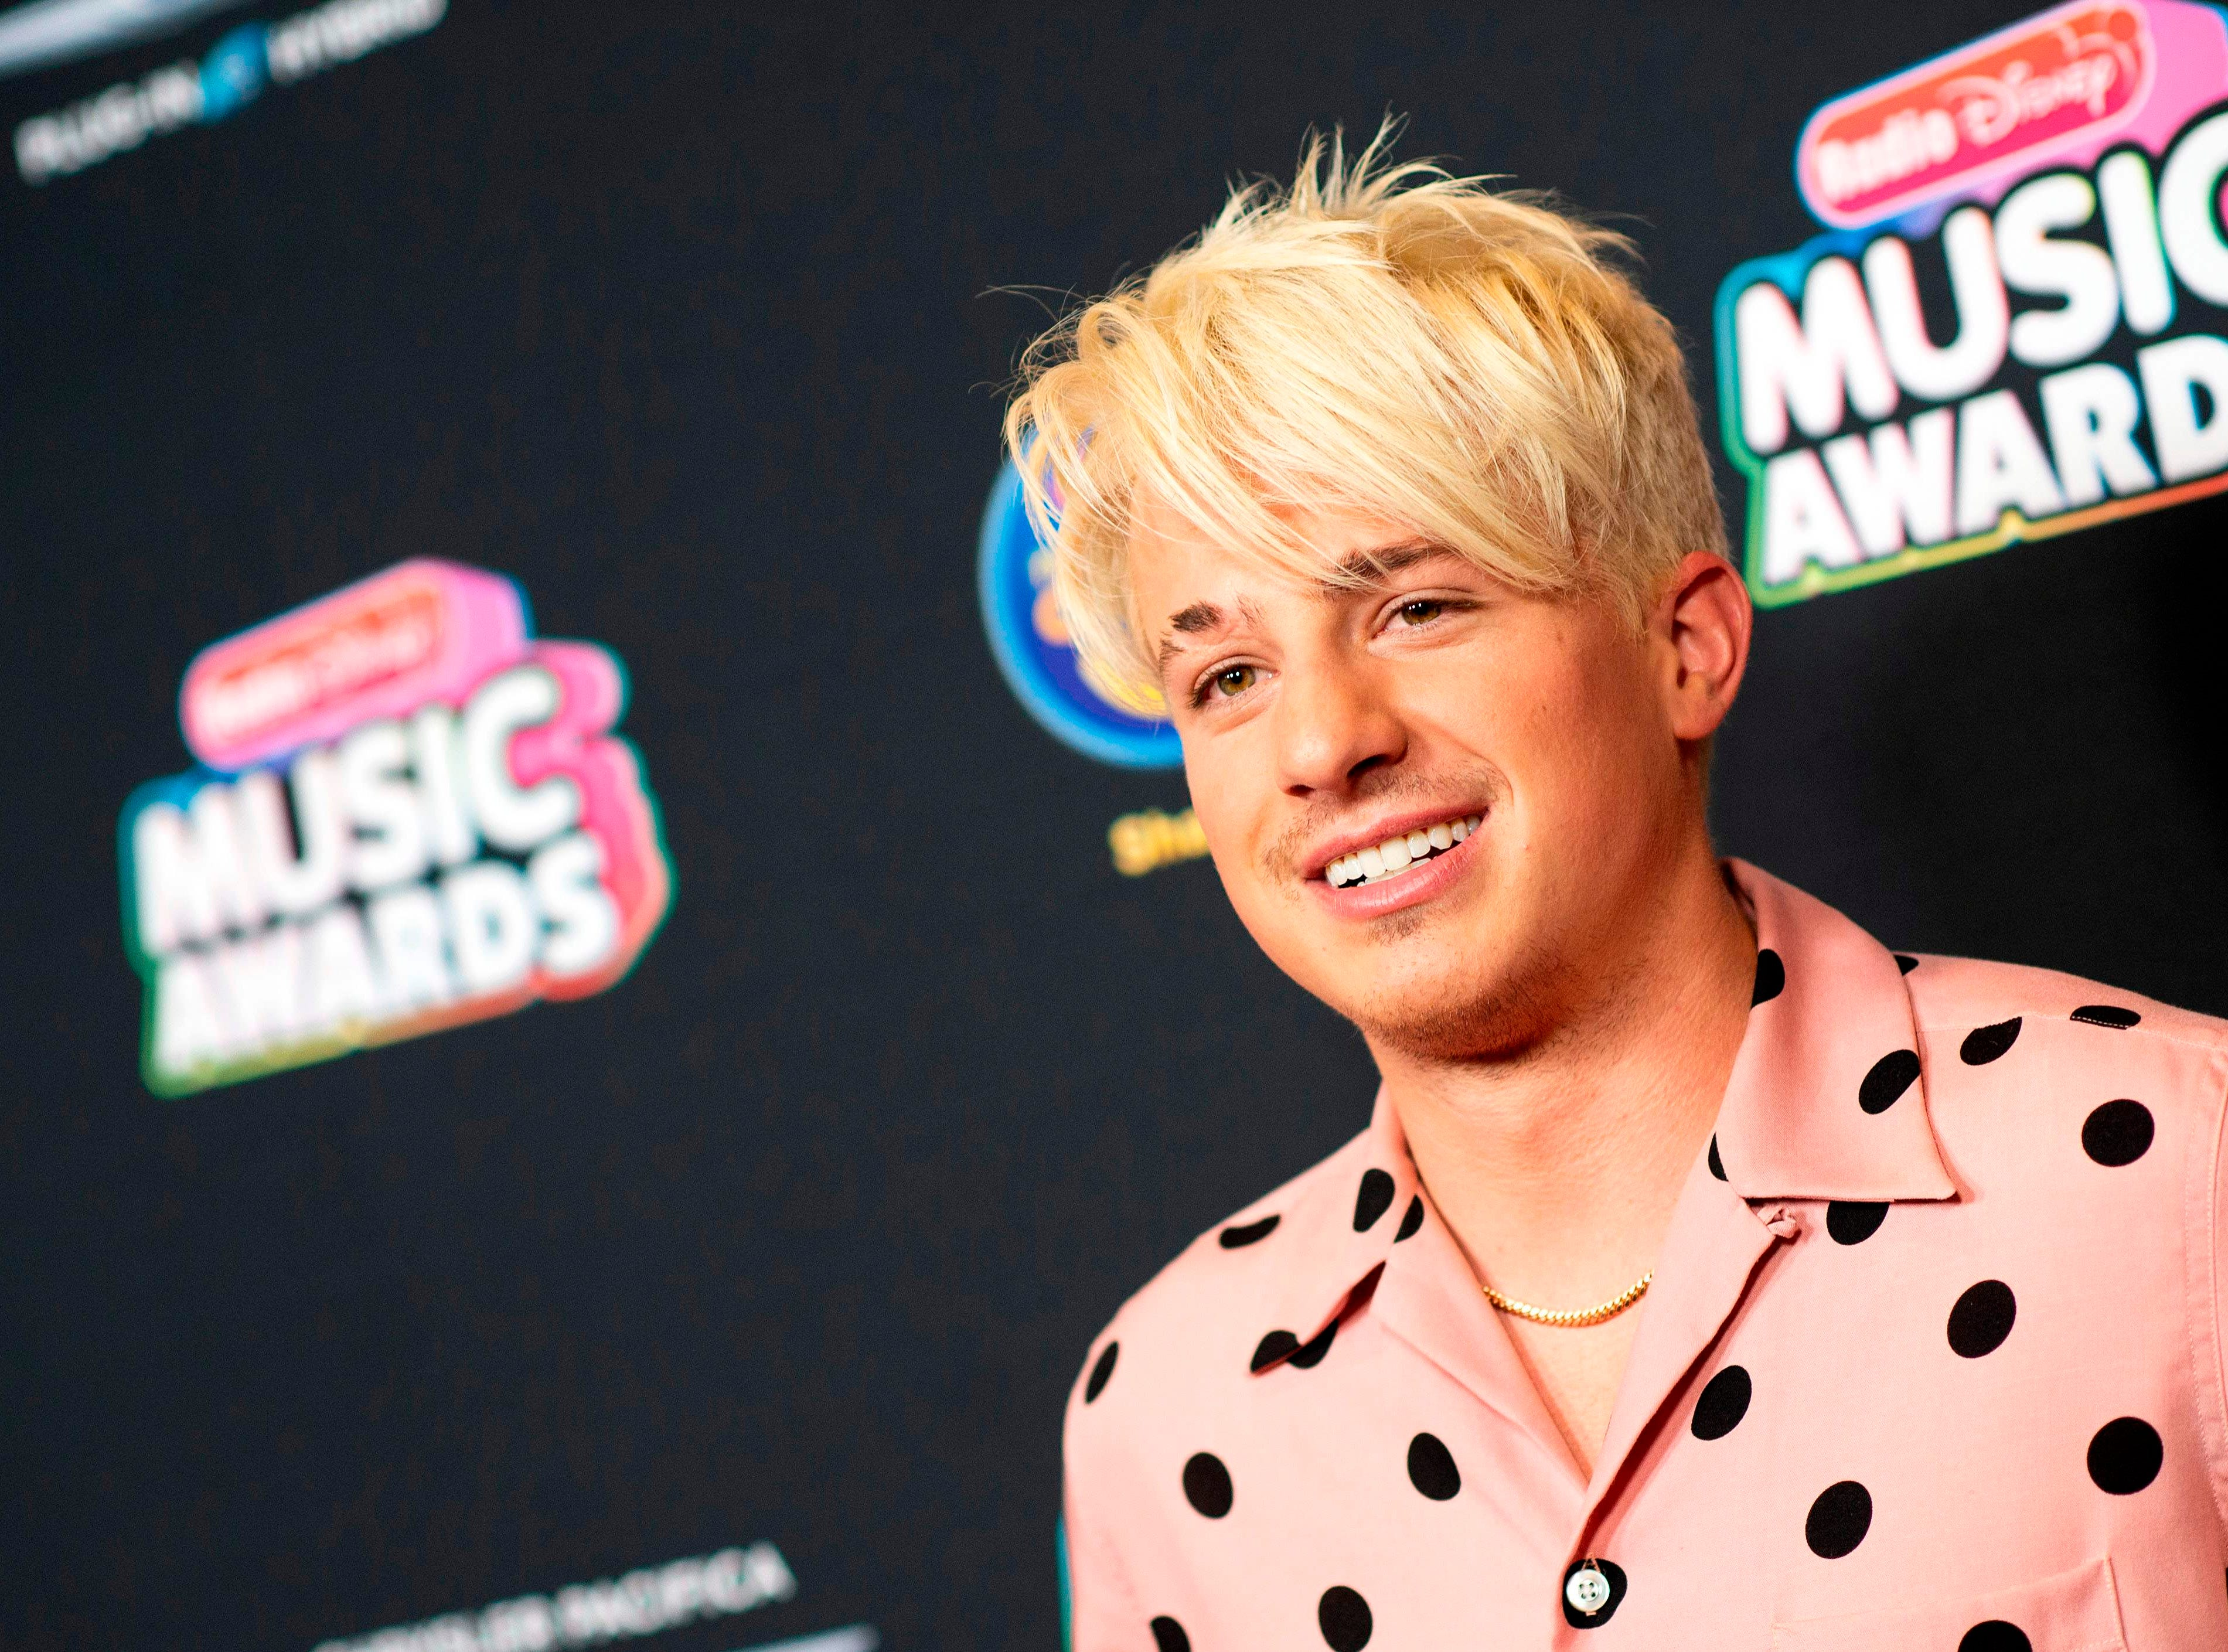 Singer/songwriter Charlie Puth attends the 2018 Radio Disney Music Awards at Loews Hollywood Hotel on June 12, 2018 in Hollywood, California. / AFP PHOTO / VALERIE MACONVALERIE MACON/AFP/Getty Images ORG XMIT: 2018 Radi ORIG FILE ID: AFP_16G584